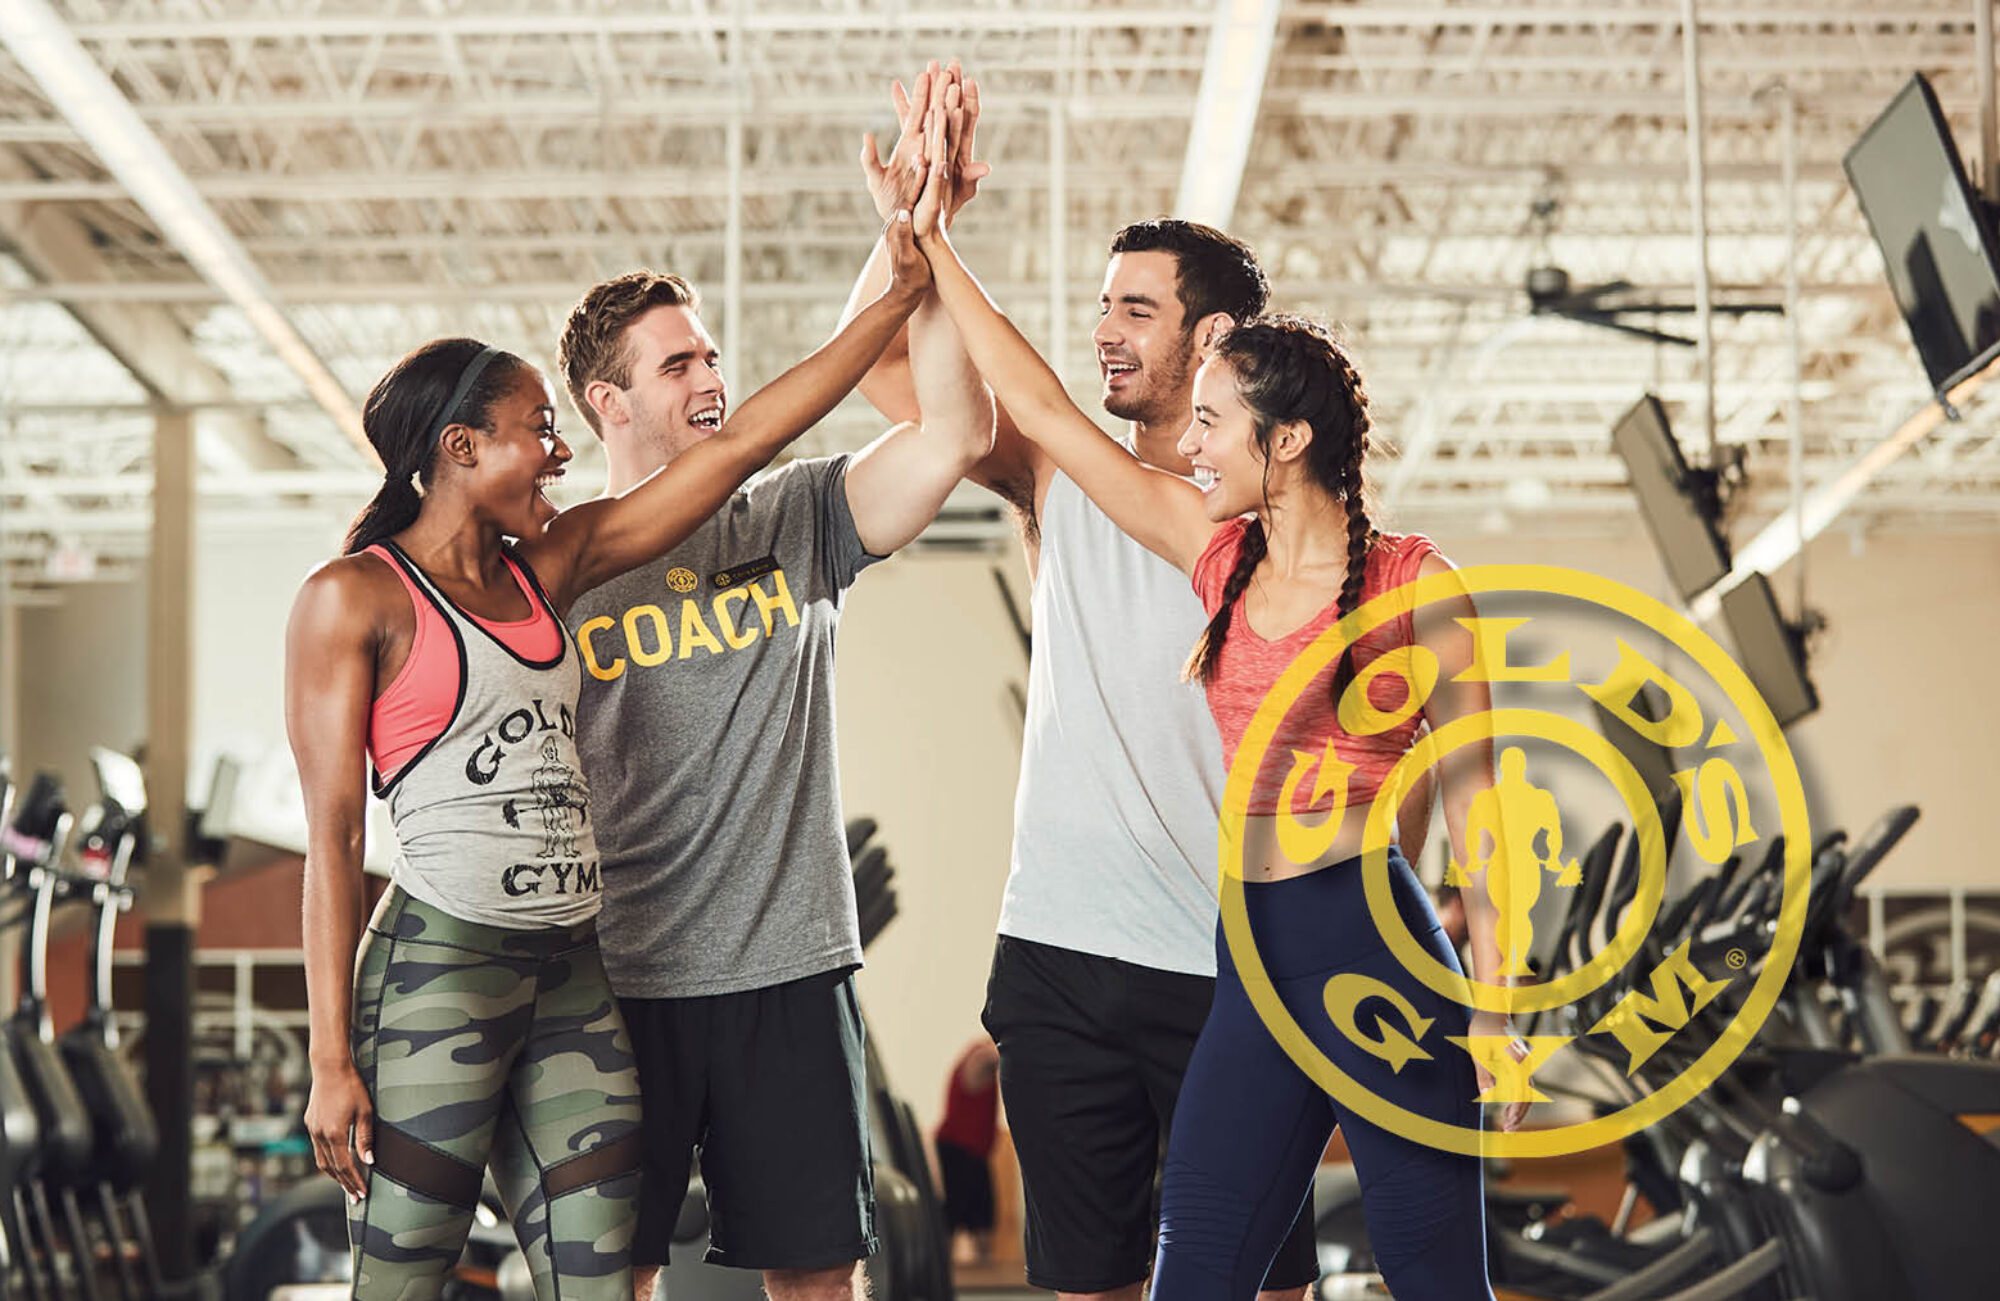 Gold's Gym Wear